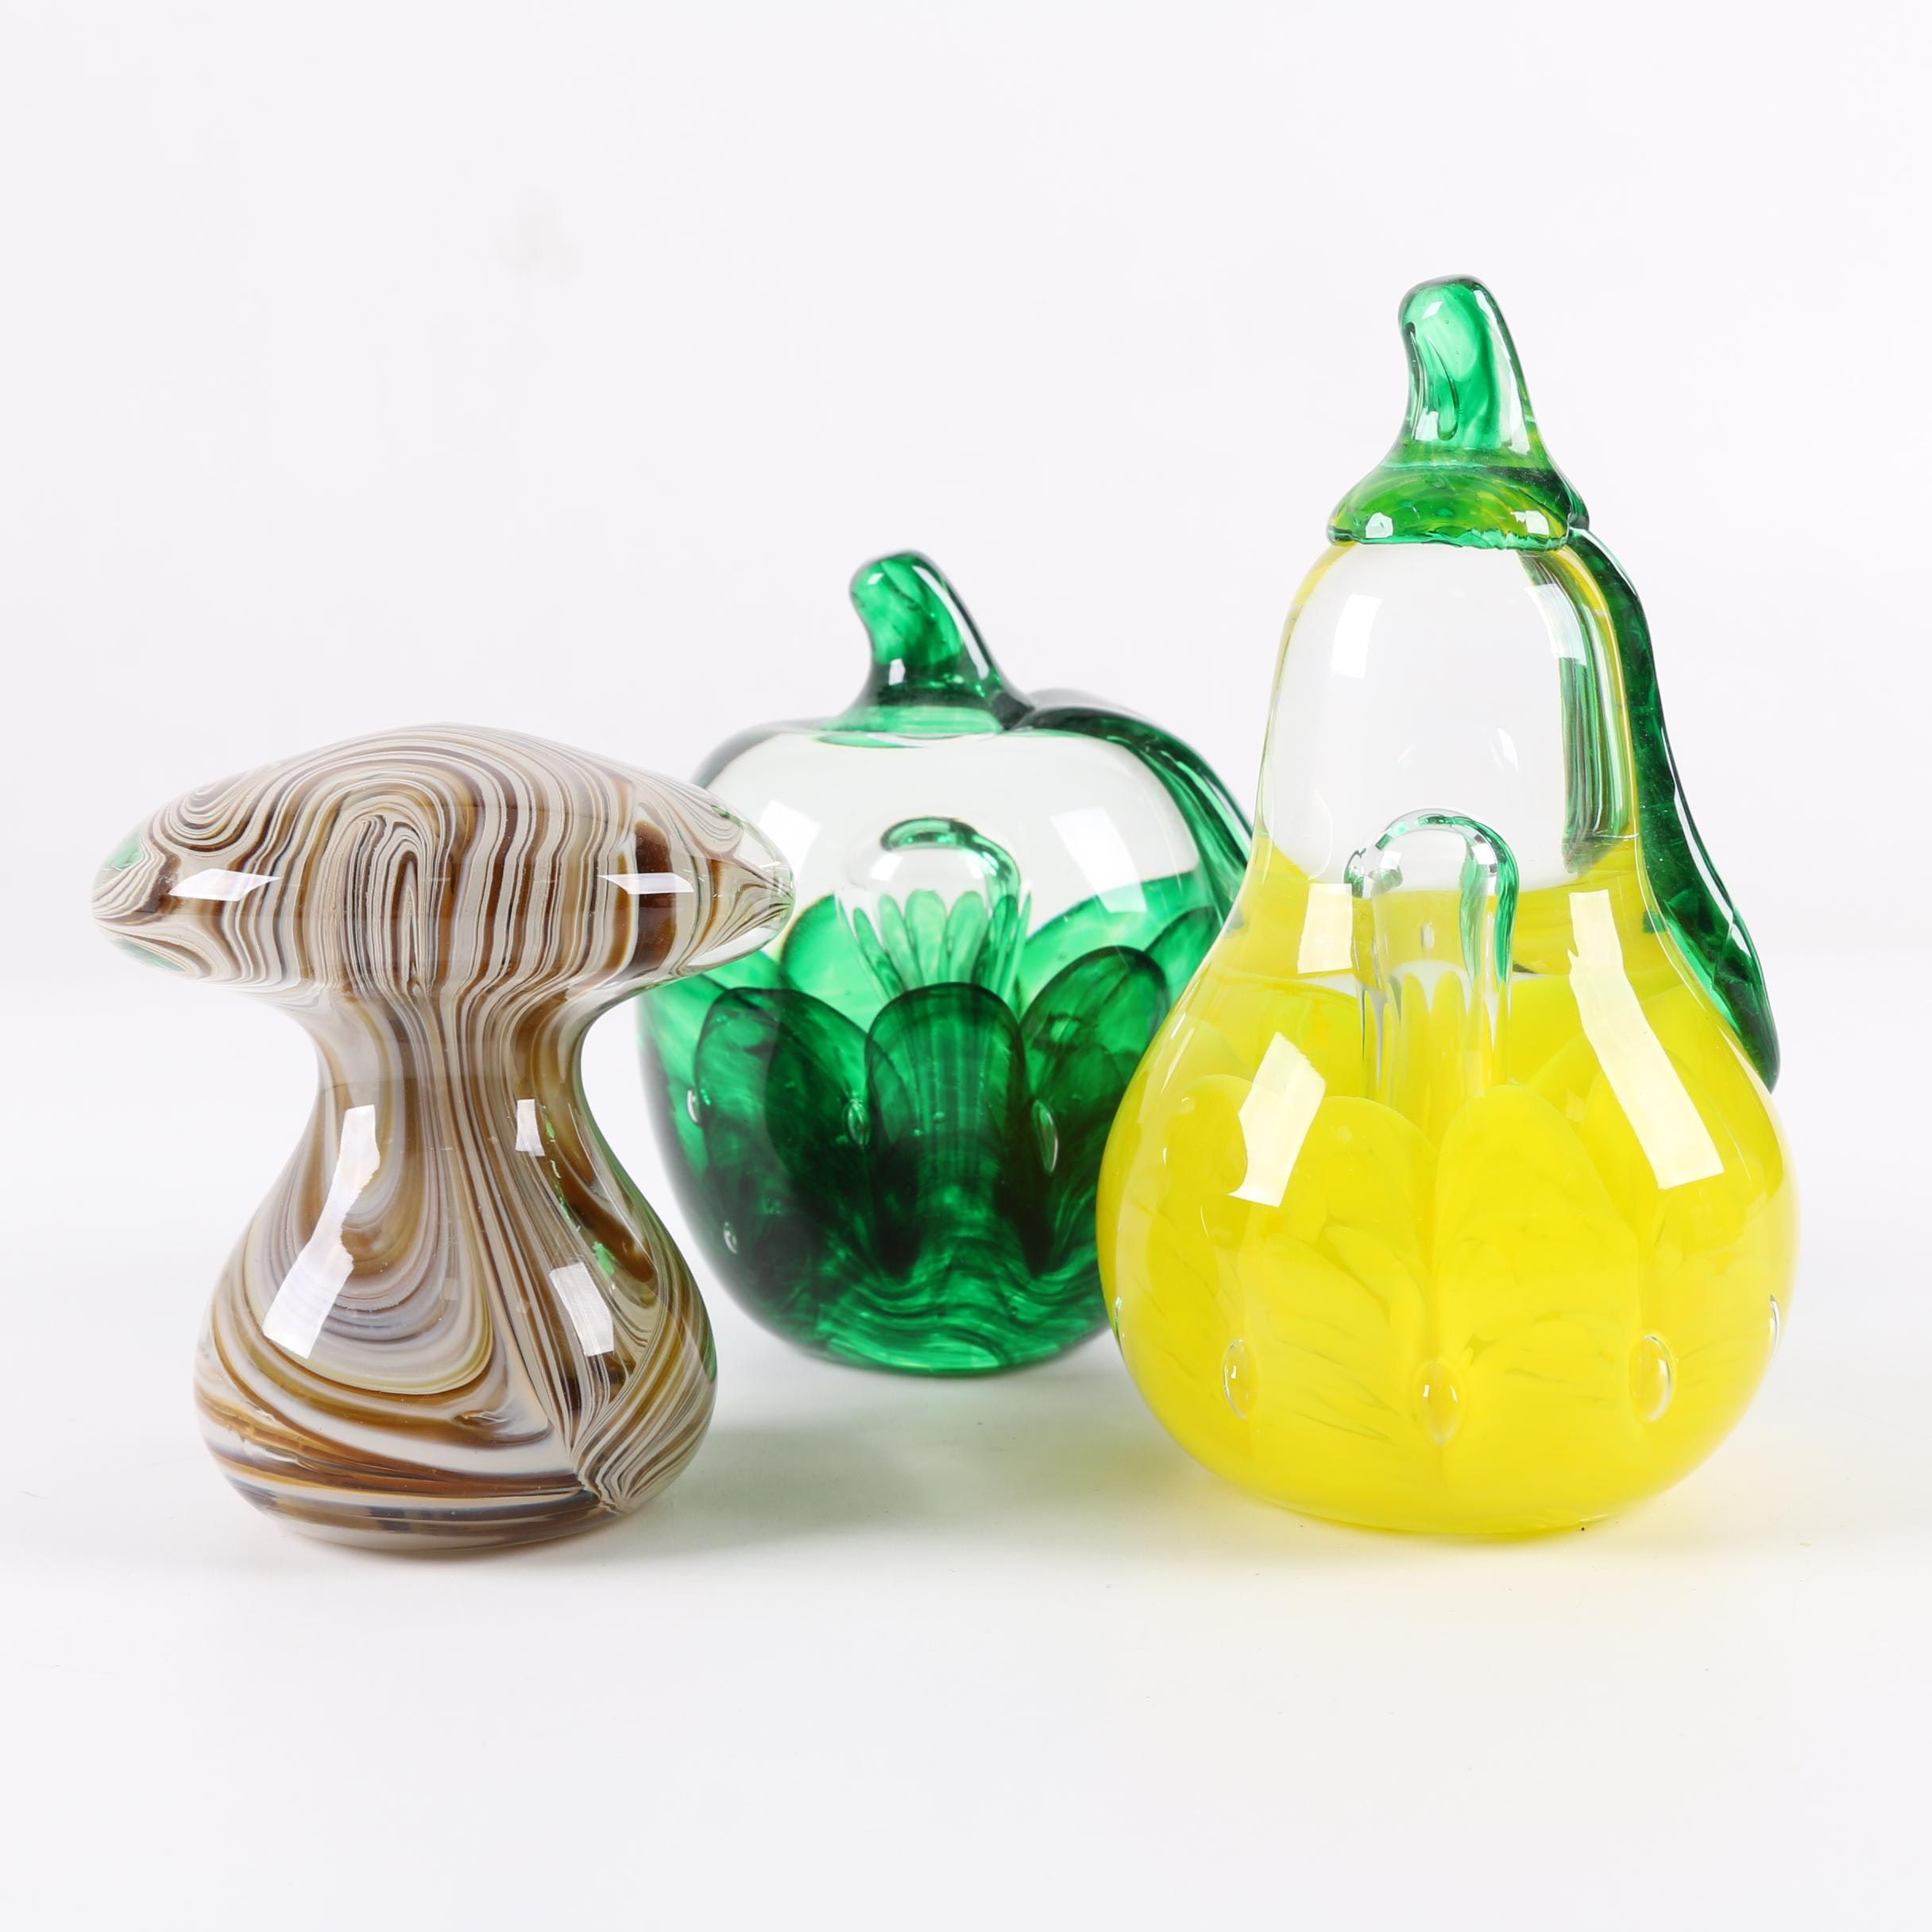 L. H. Bayley Art Glass Paperweights